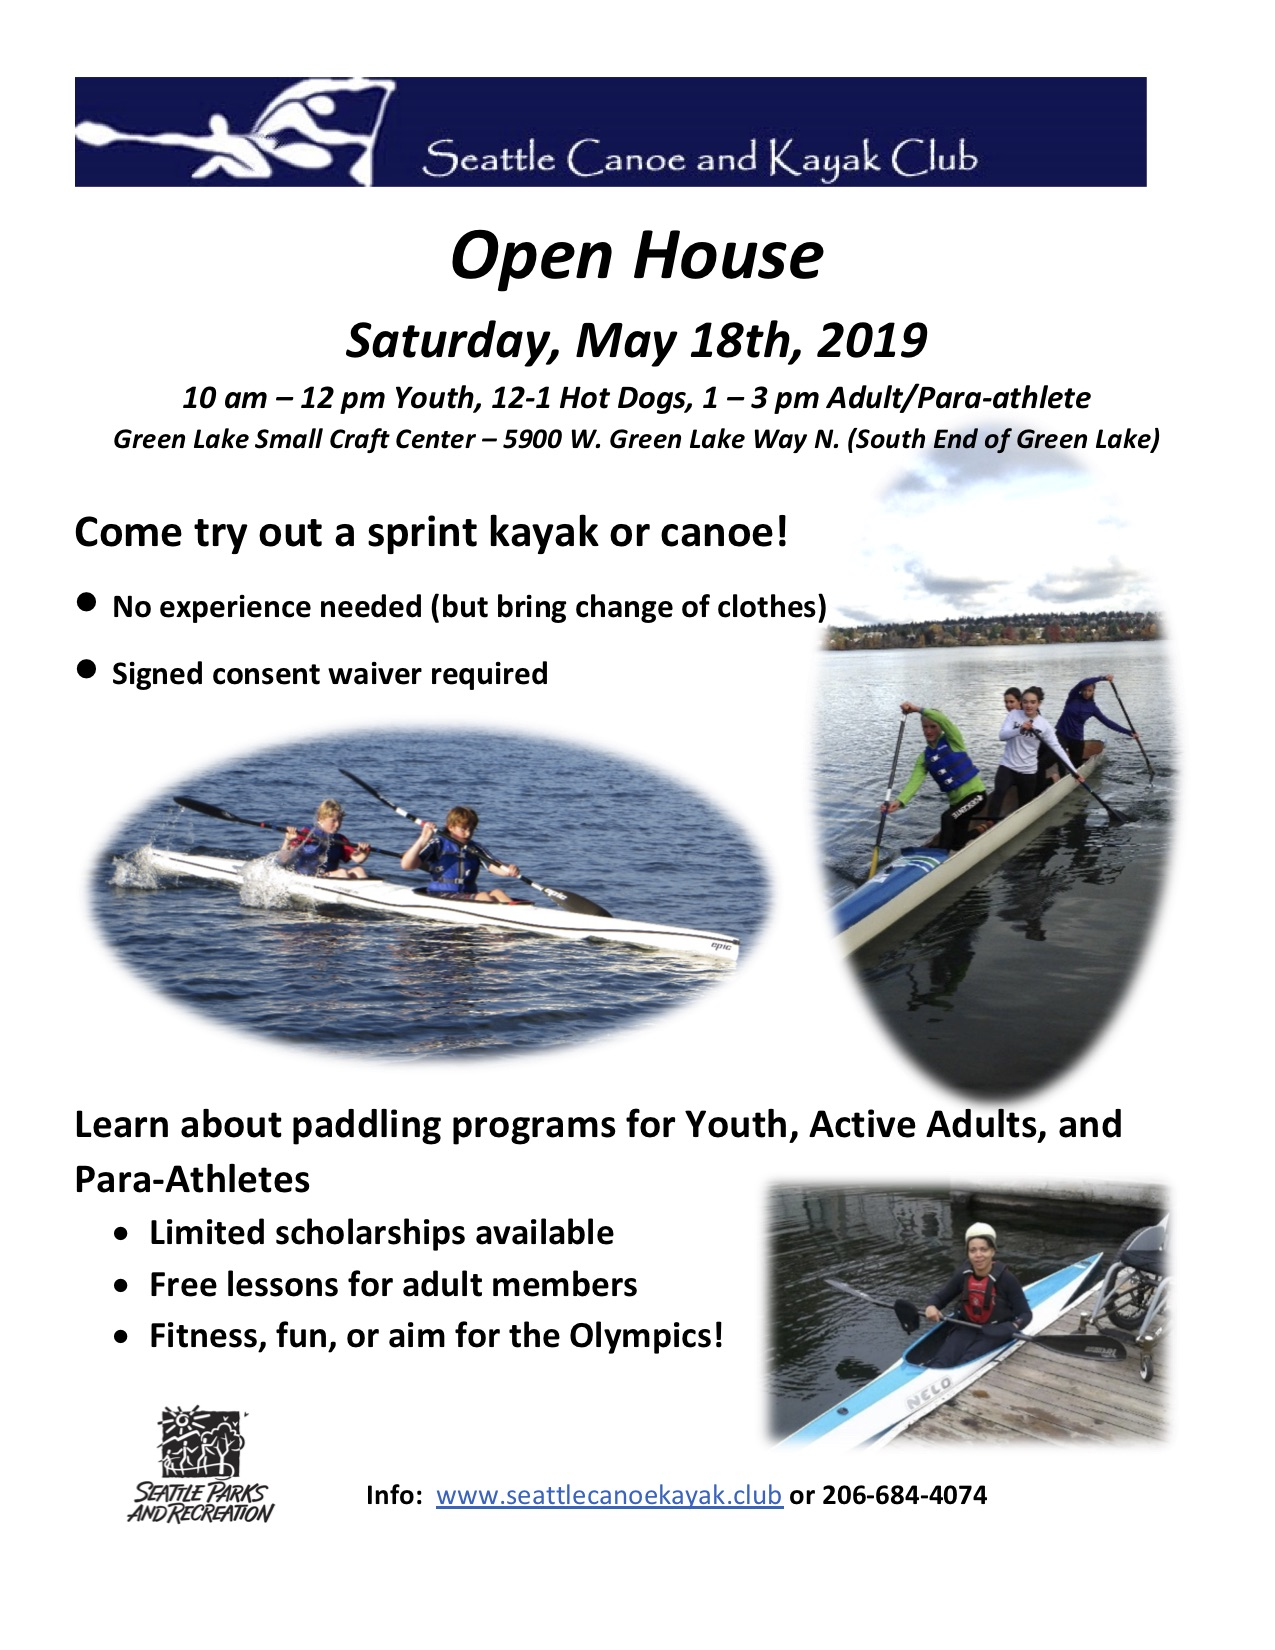 ◊ SCKC Open House ◊ Seattle Canoe and Kayak Club